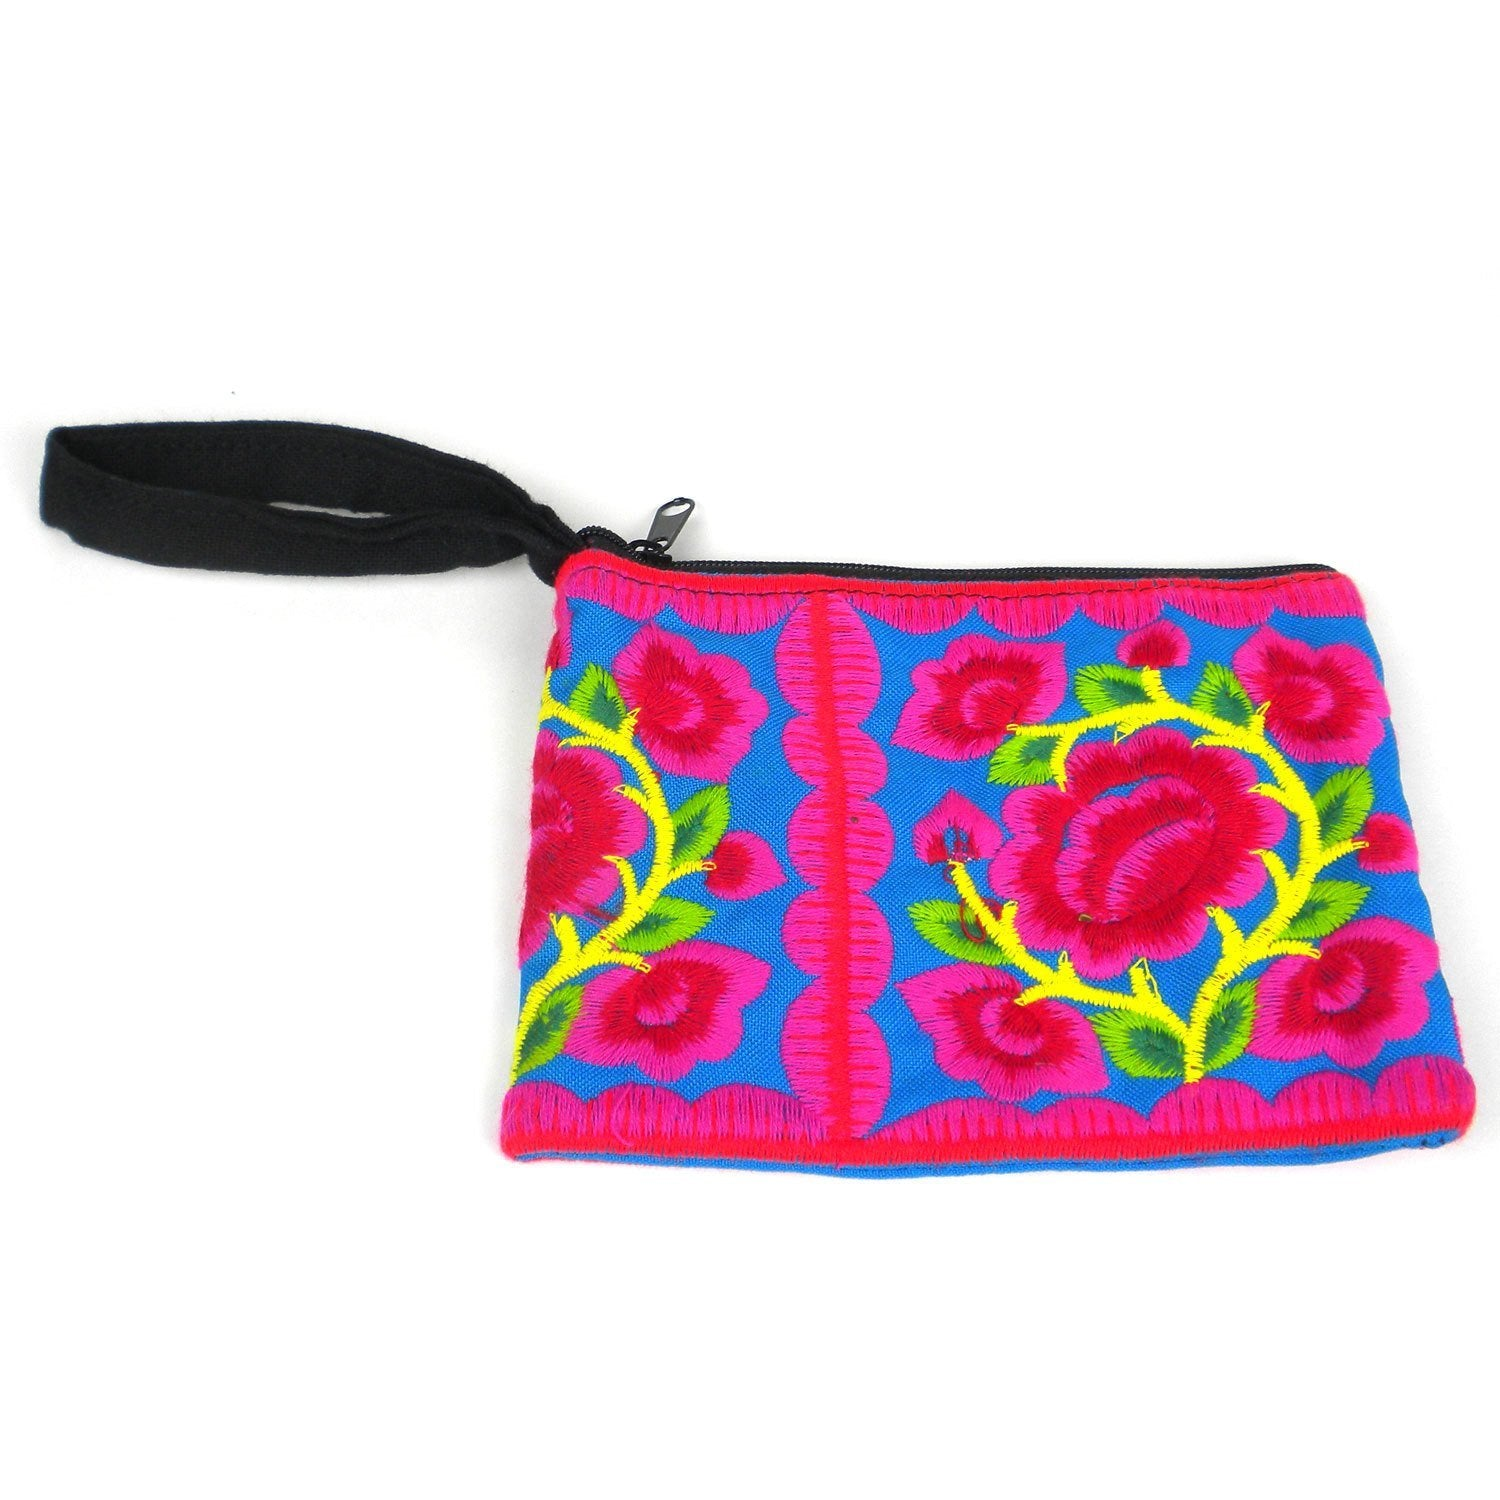 Hmong Embroidered Coin Purse - Blue